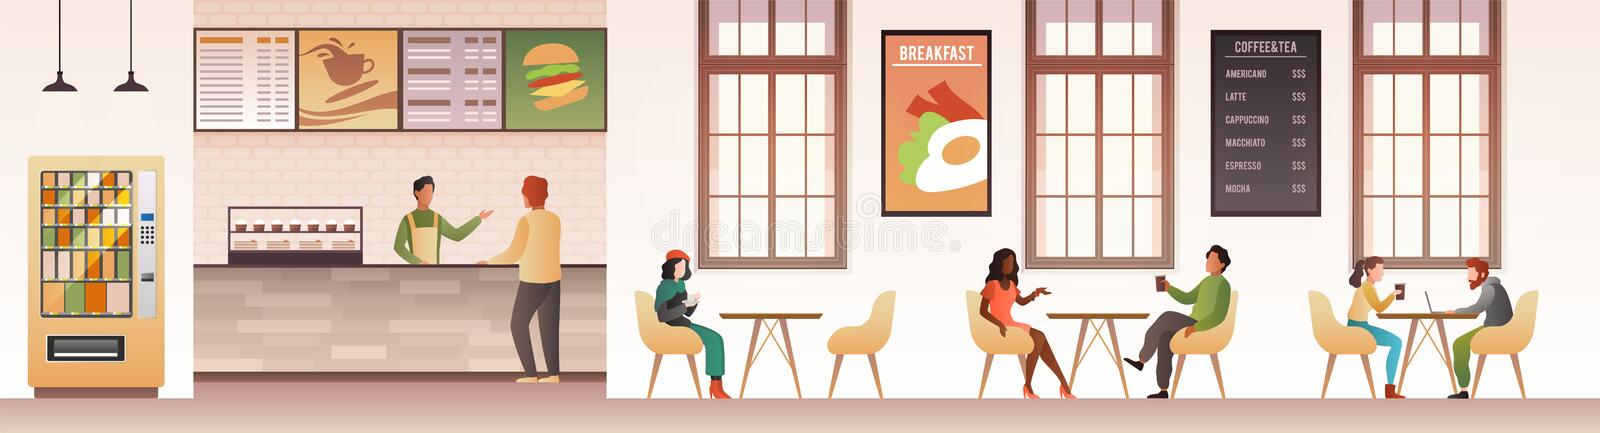 People at restaurant. Guys snacking meal in food court, family eating dinner in cafeteria or buffet interior flat vector. Design of modern cafe with customer vector illustration